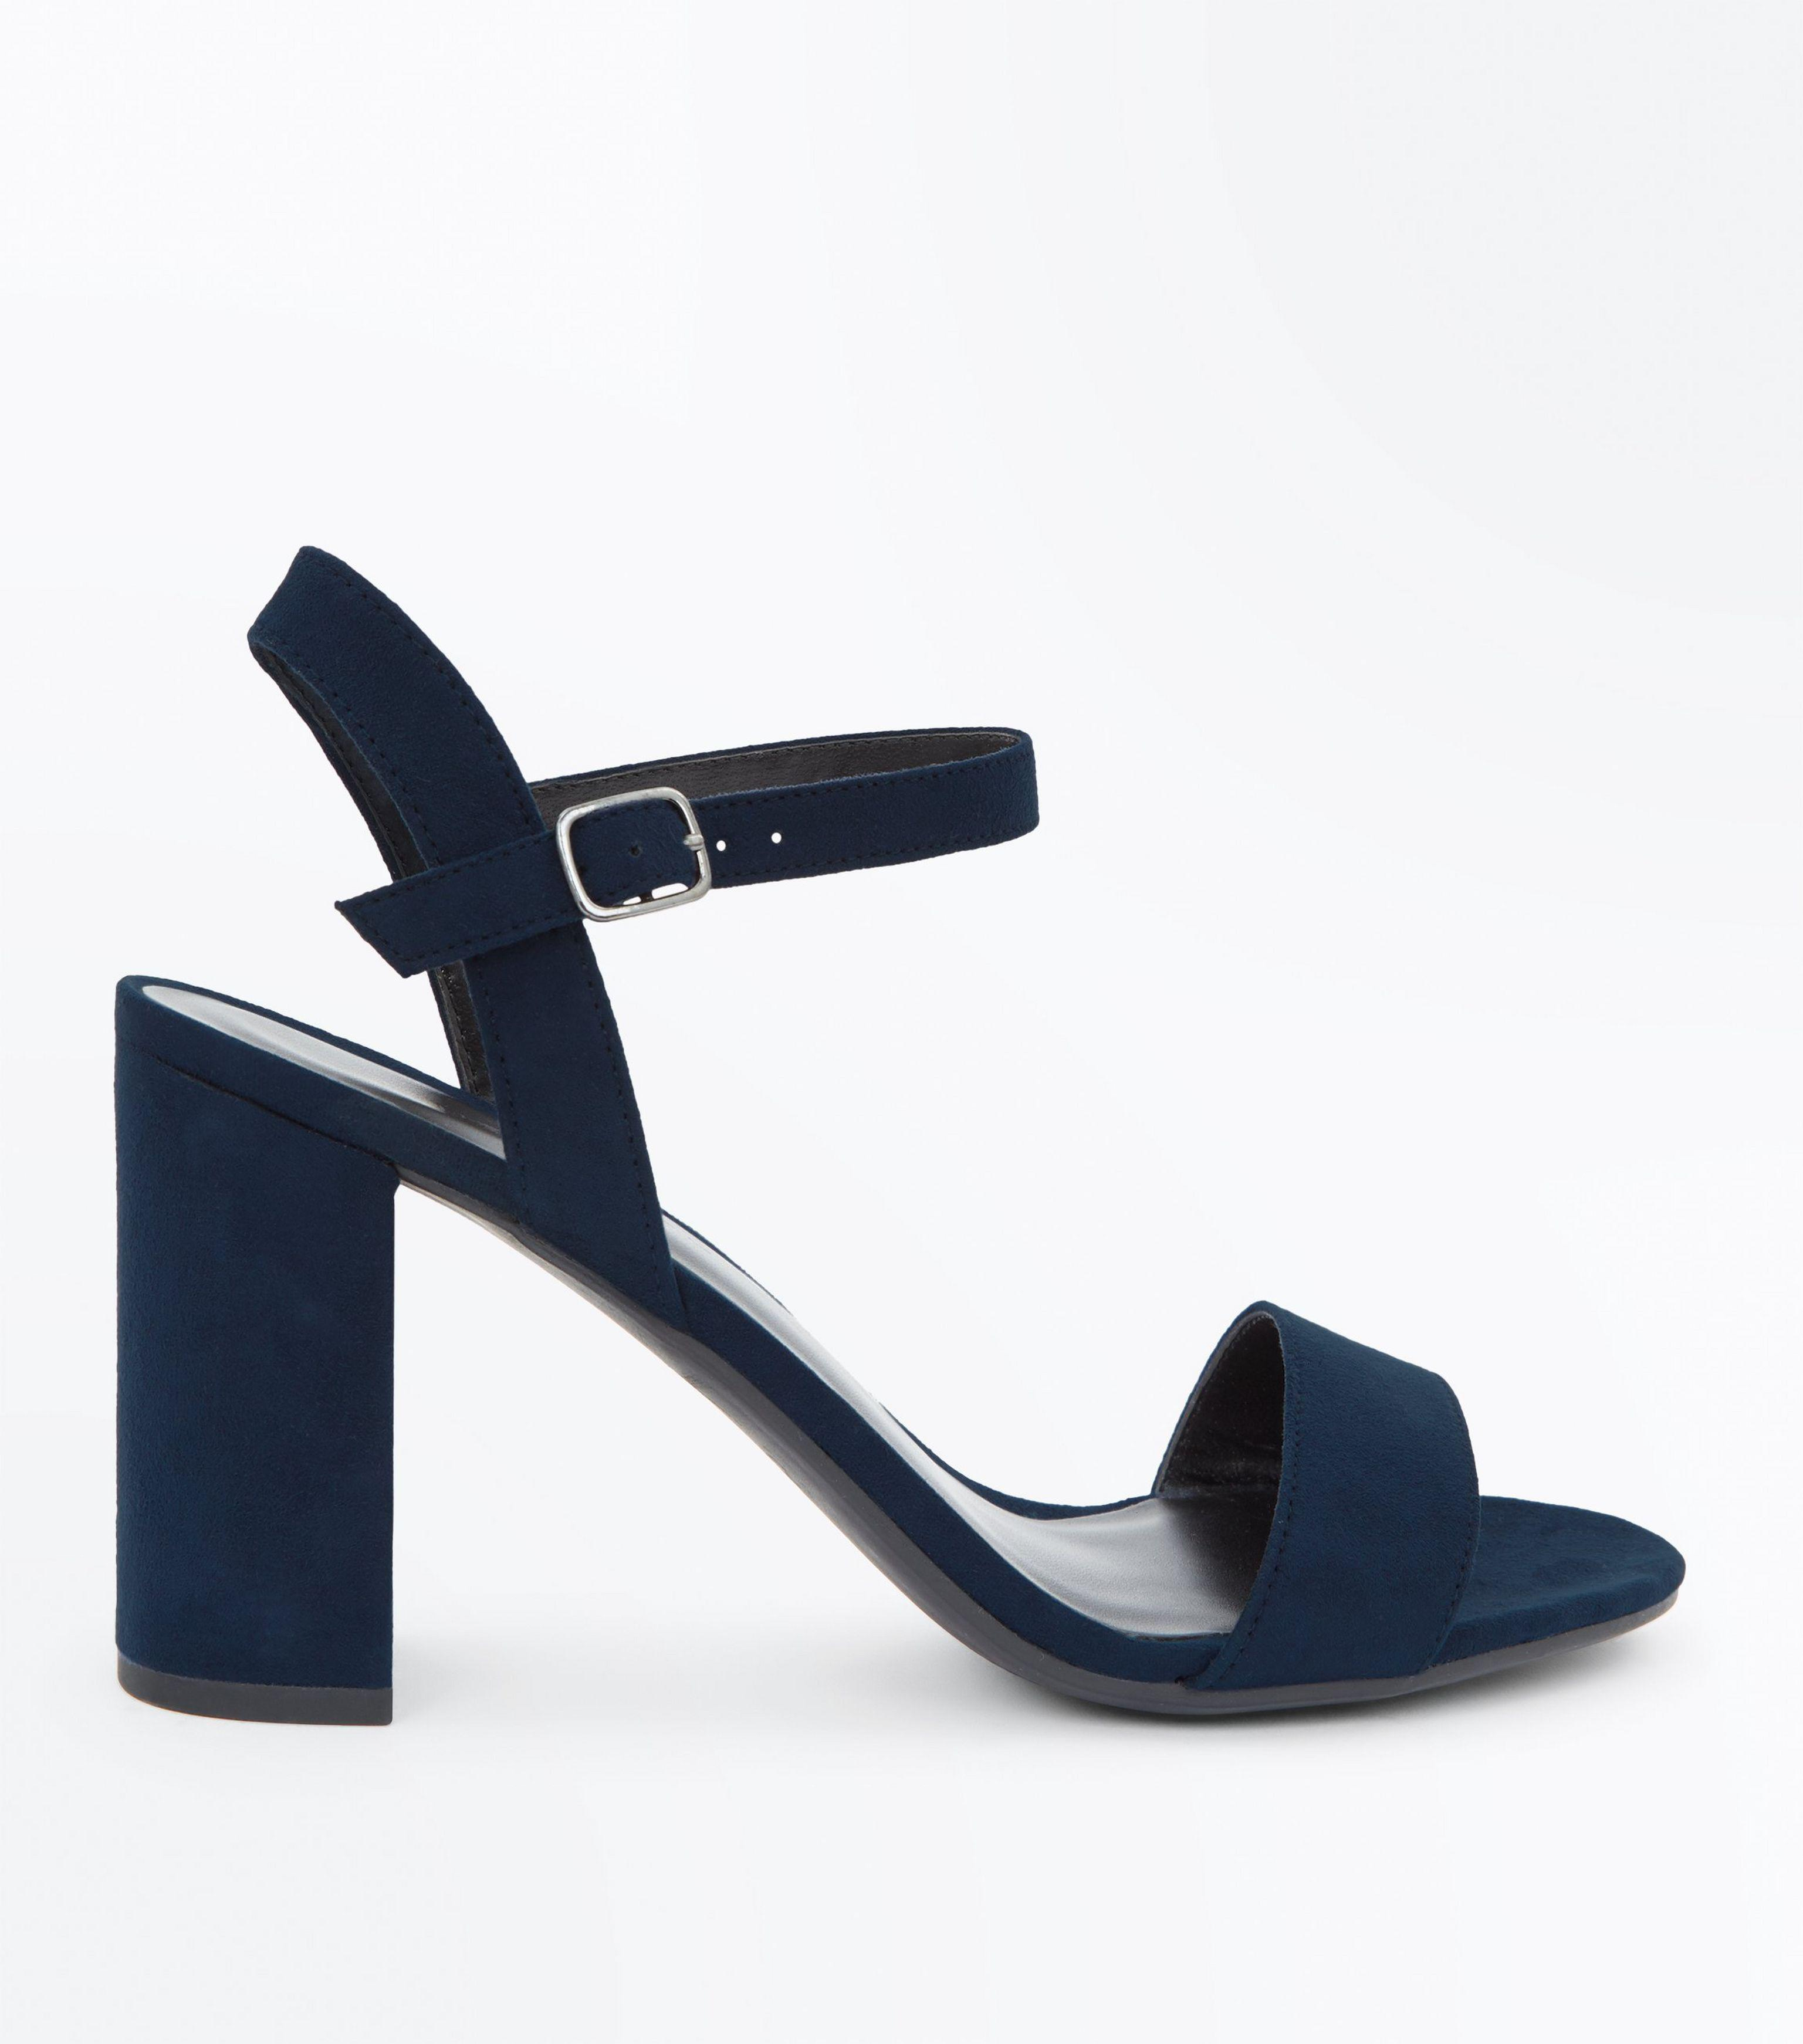 39f8c01c7a457 Previously sold at: New Look. Gallery. Previously sold at: New Look. New  Look Navy Blue Suedette Block Heel Sandals in Blue - Lyst pic